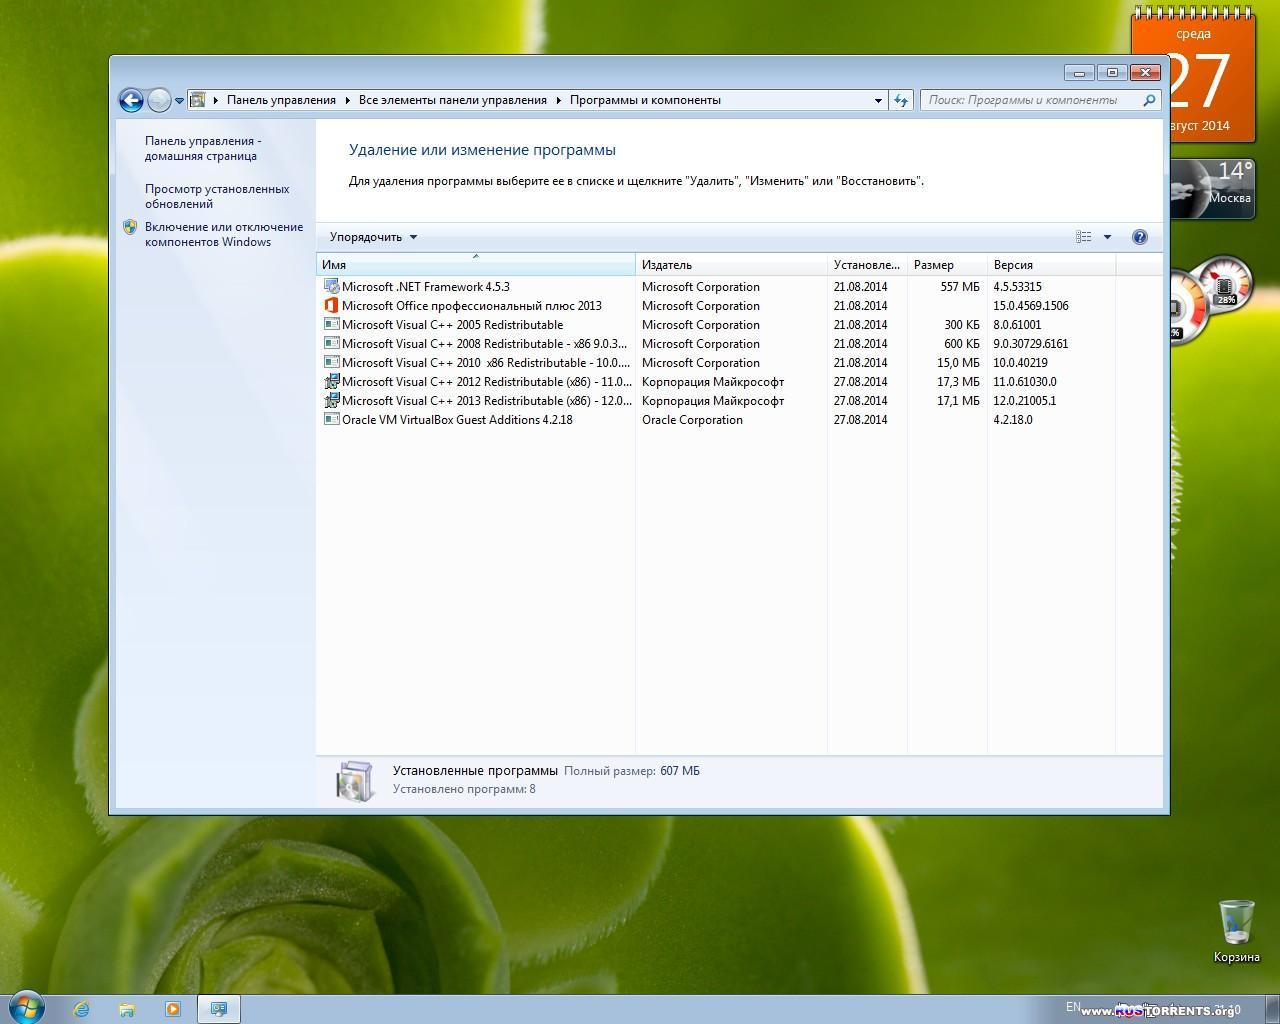 Windows 7 SP1 (x86/x64) + Office 2013 SP1 AIO 26in1 by SmokieBlahBlah 26.08.14 RUS